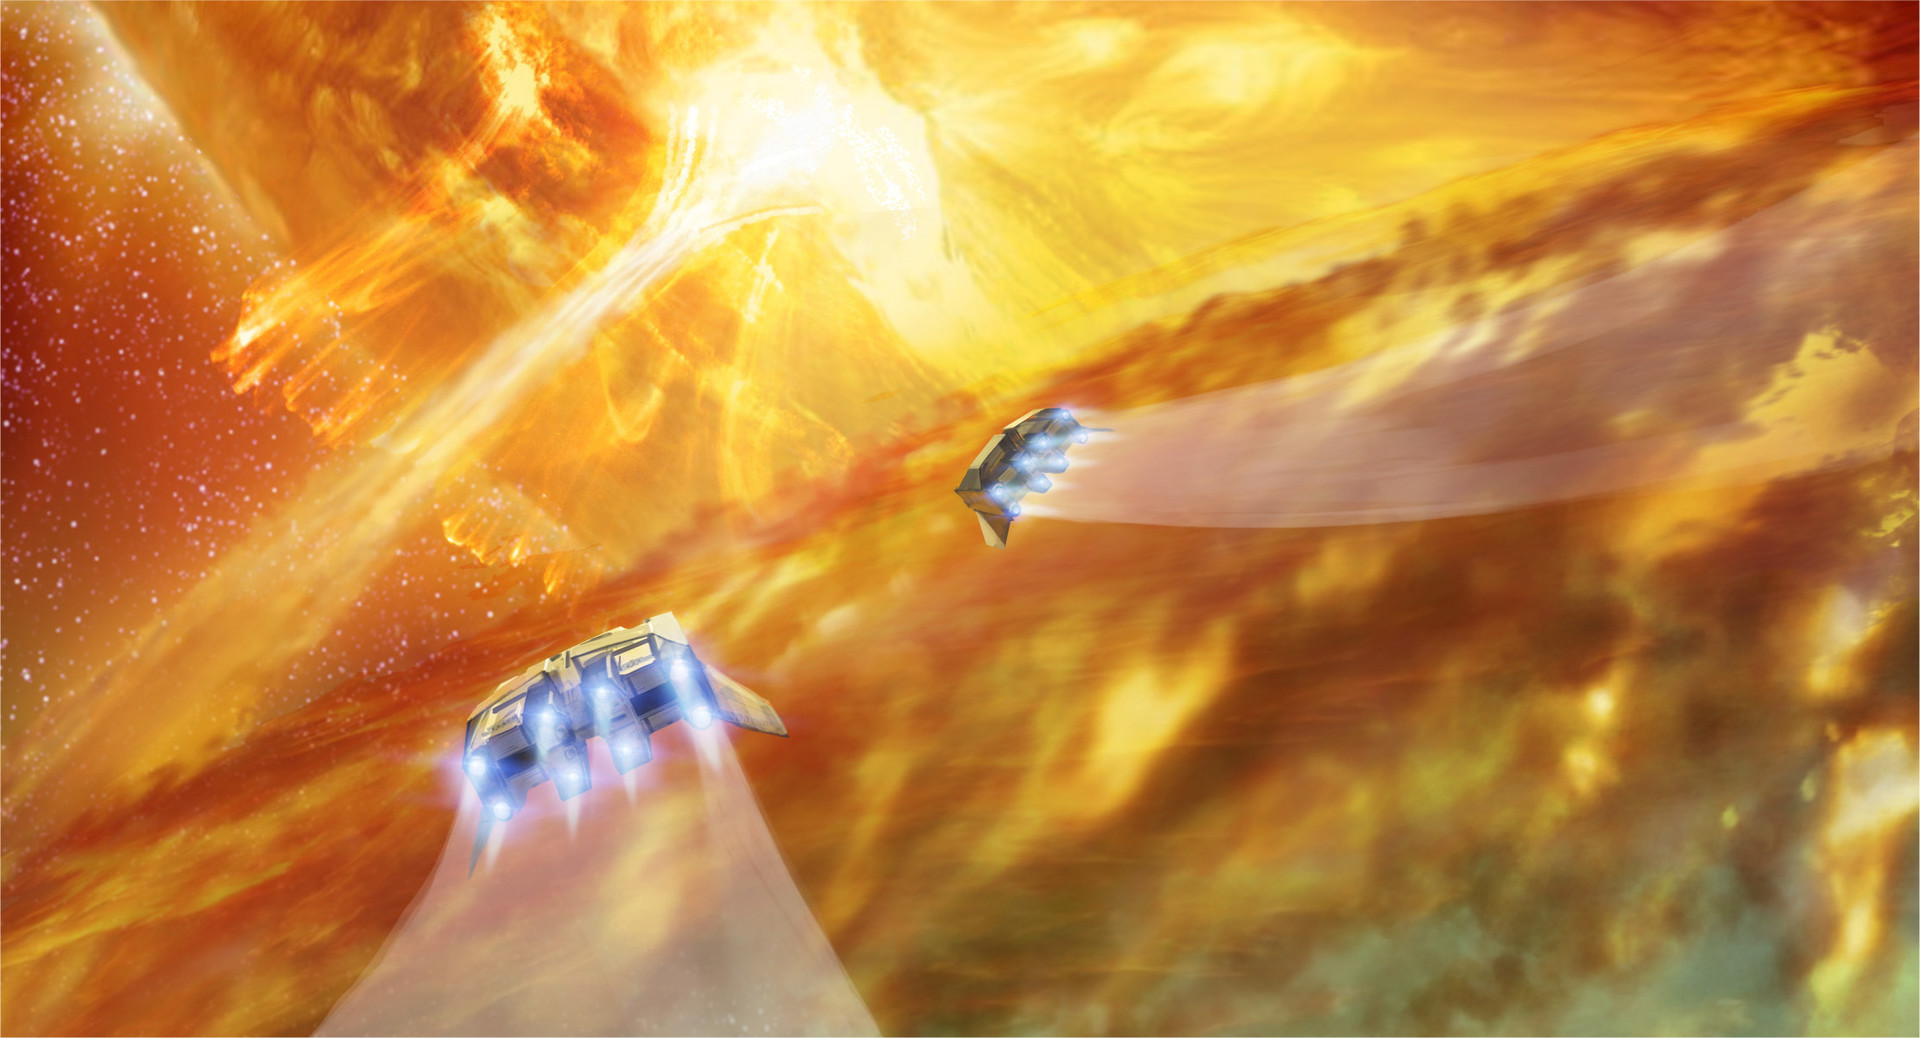 6)Our ships skip over the ring of burning gas. With the red giant now risen out of view, the bridge between stars looms ahead like a waterfall of liquid fire.